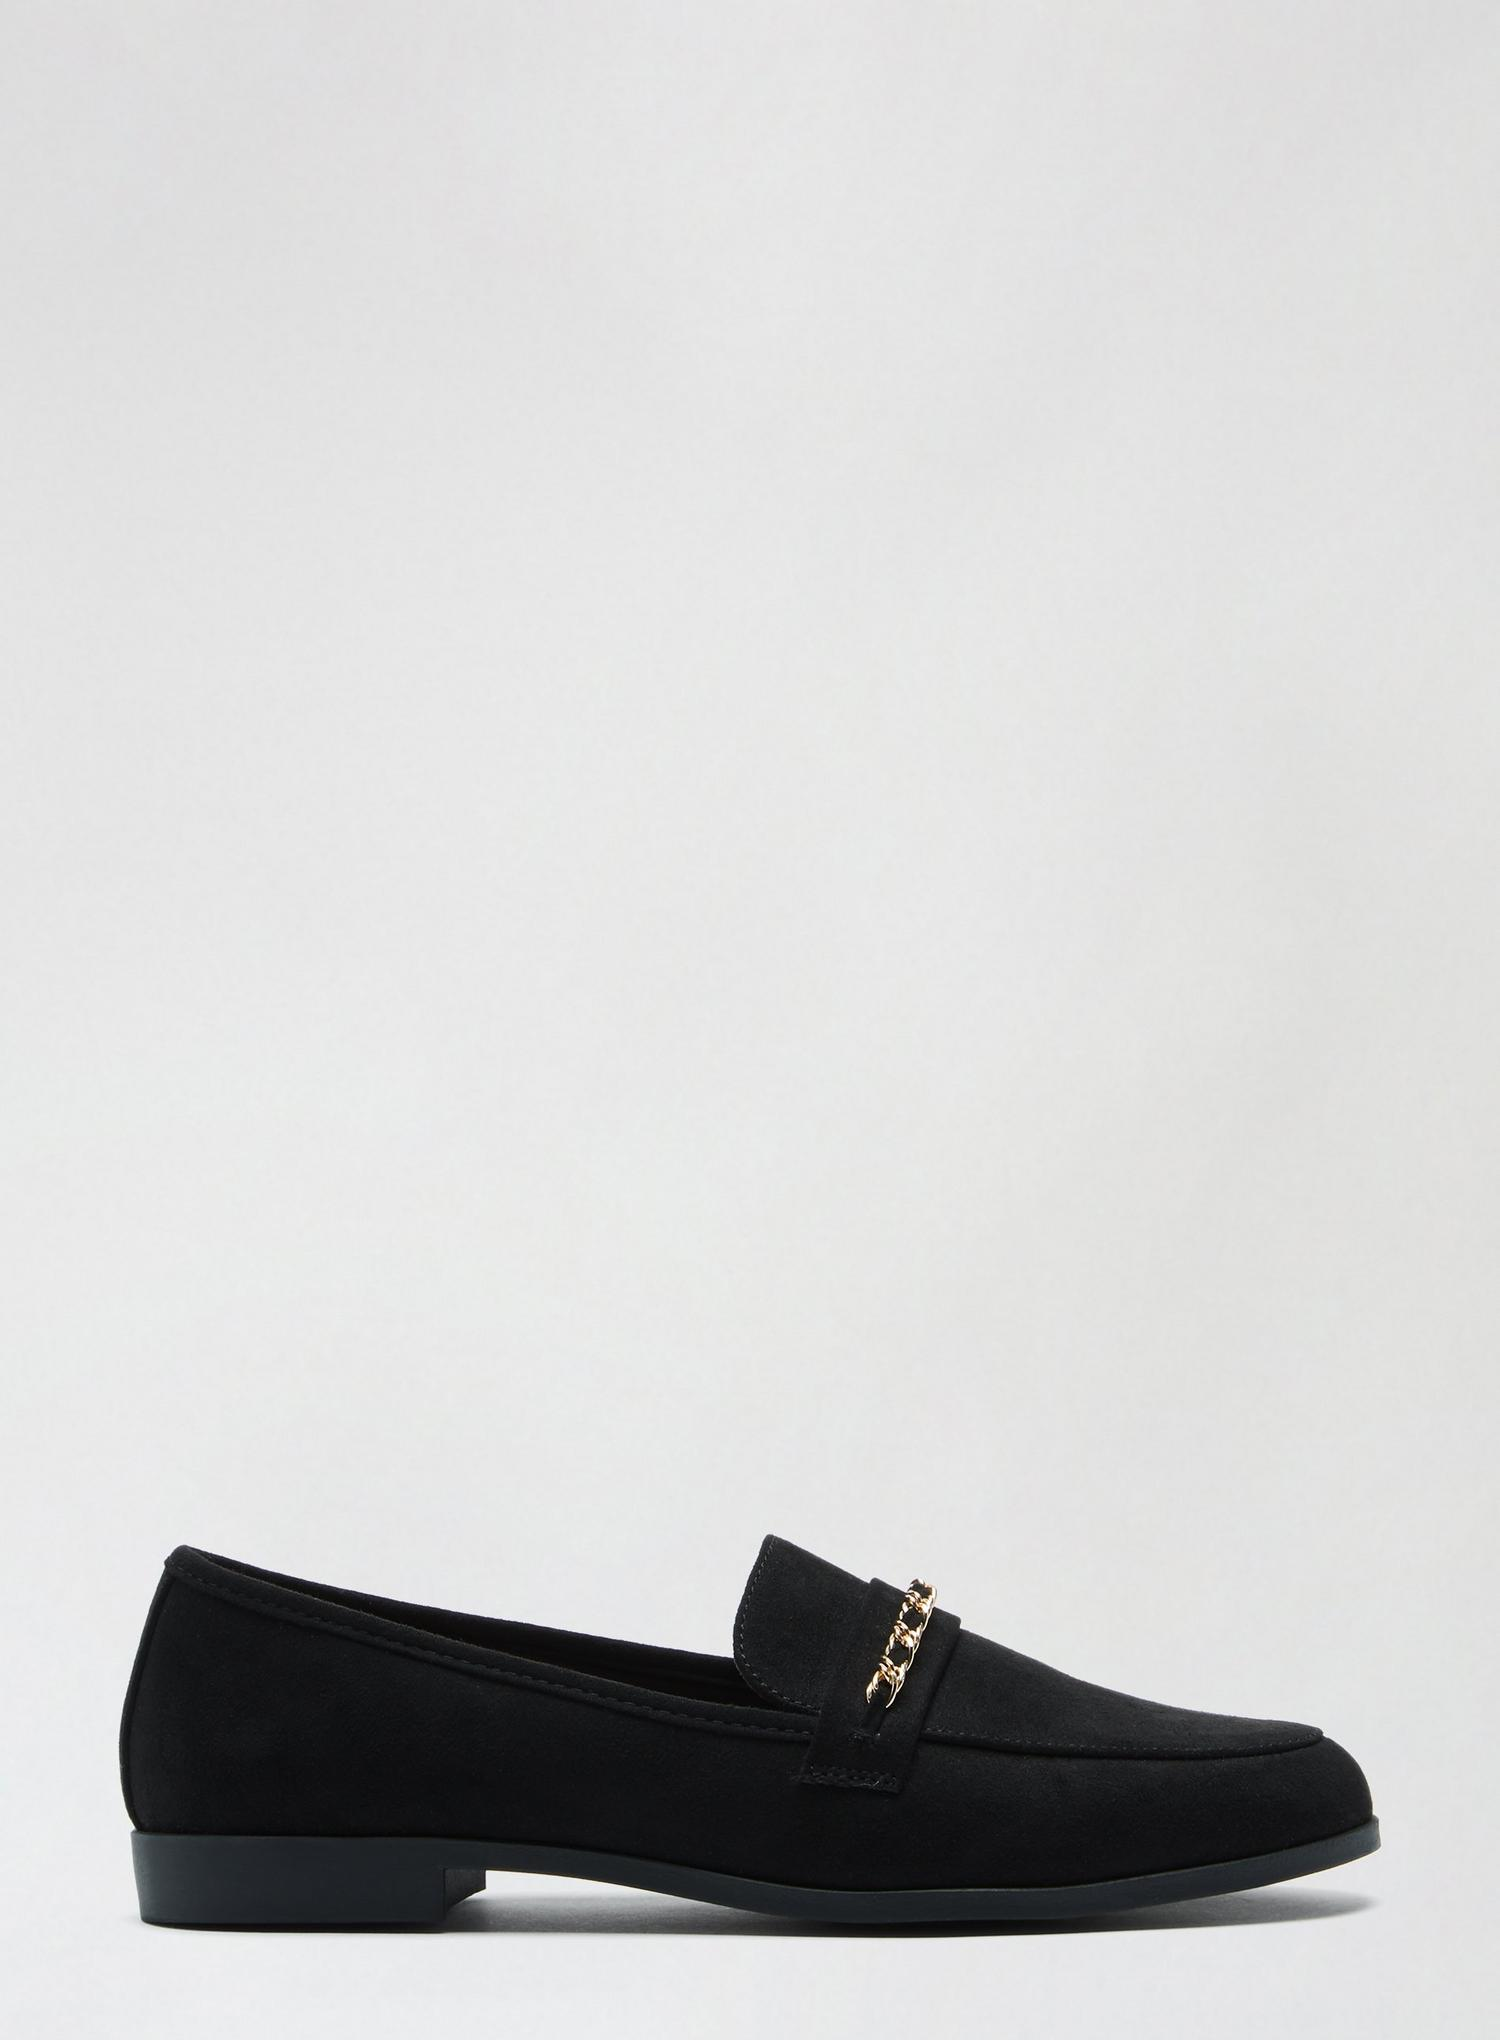 105 Black Libra Loafers image number 1